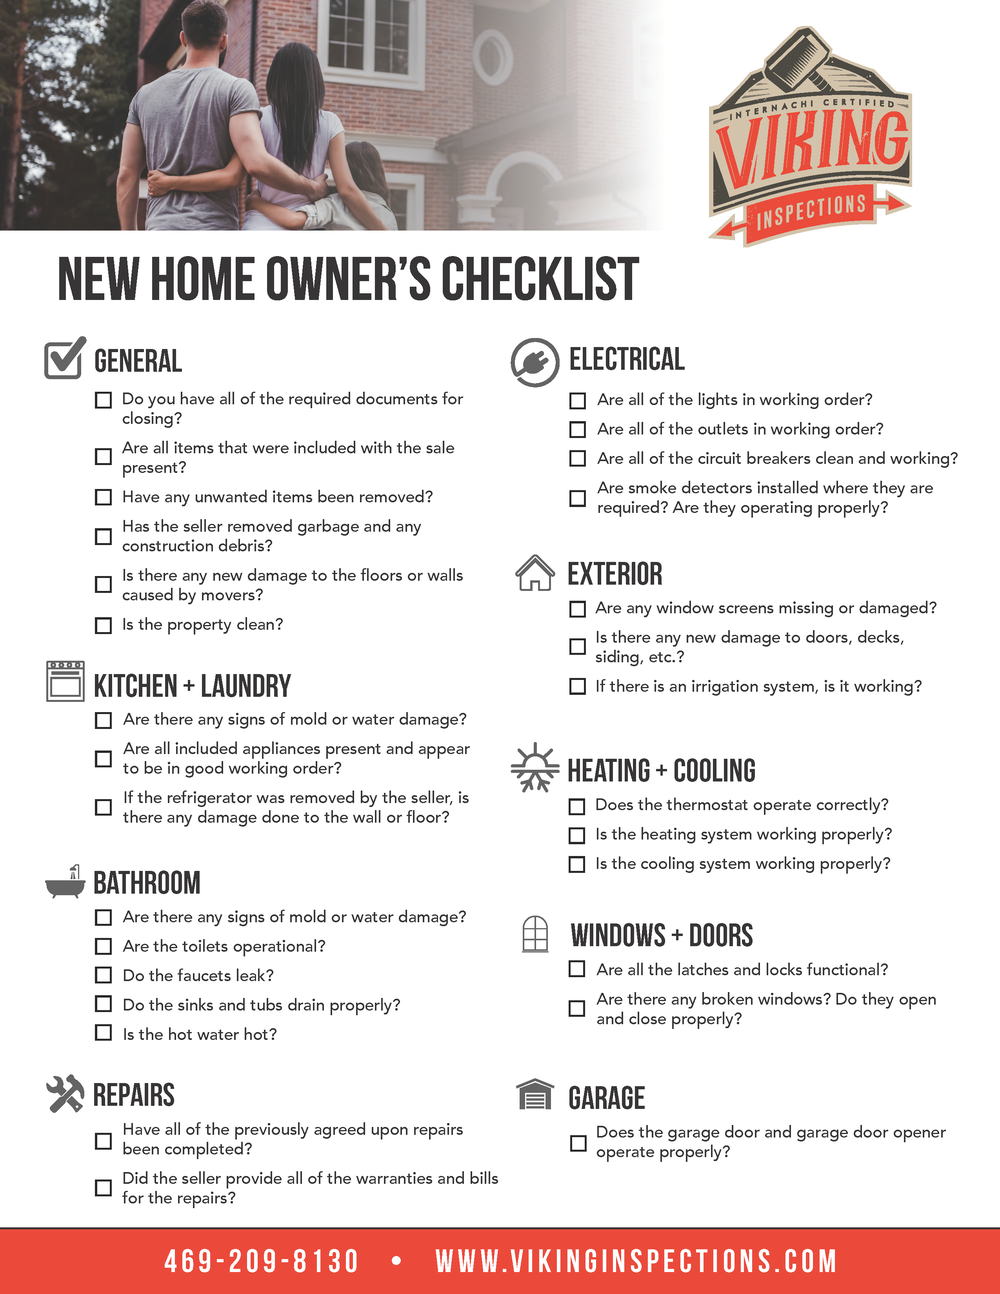 Home Owners Checklist.png